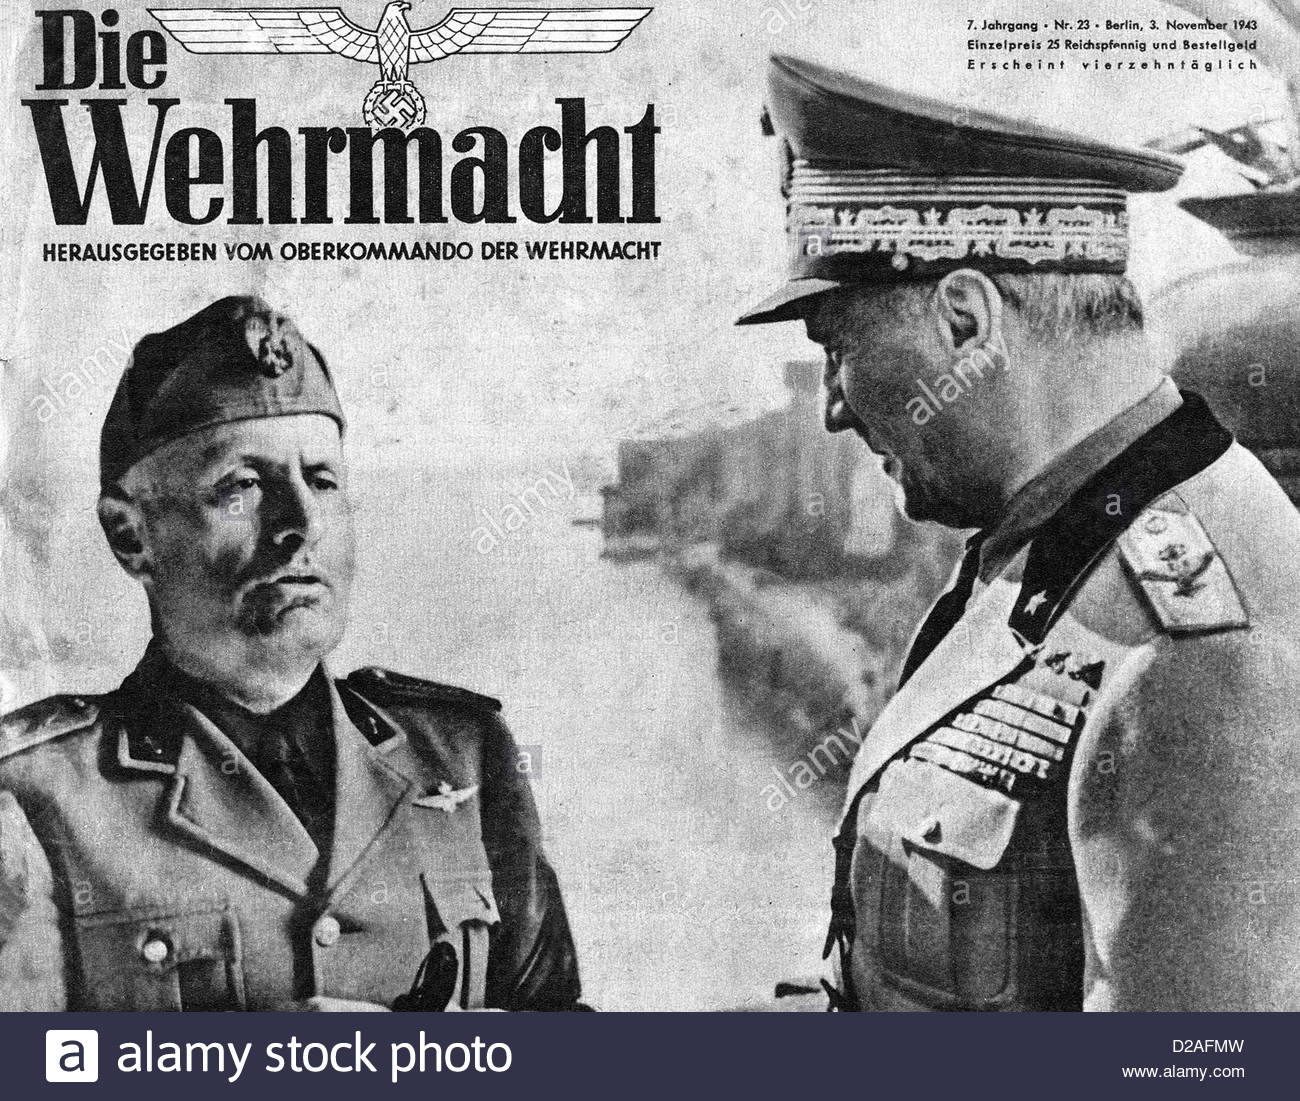 Germany  Benito Mussolini Shown With Marshall Rodolfo Germany  Benito Mussolini Shown With Marshall Rodolfo Graziani DAFMW Stock Photo Germany  Benito Mussolini Shown With Marshall Rodolfo Graziani